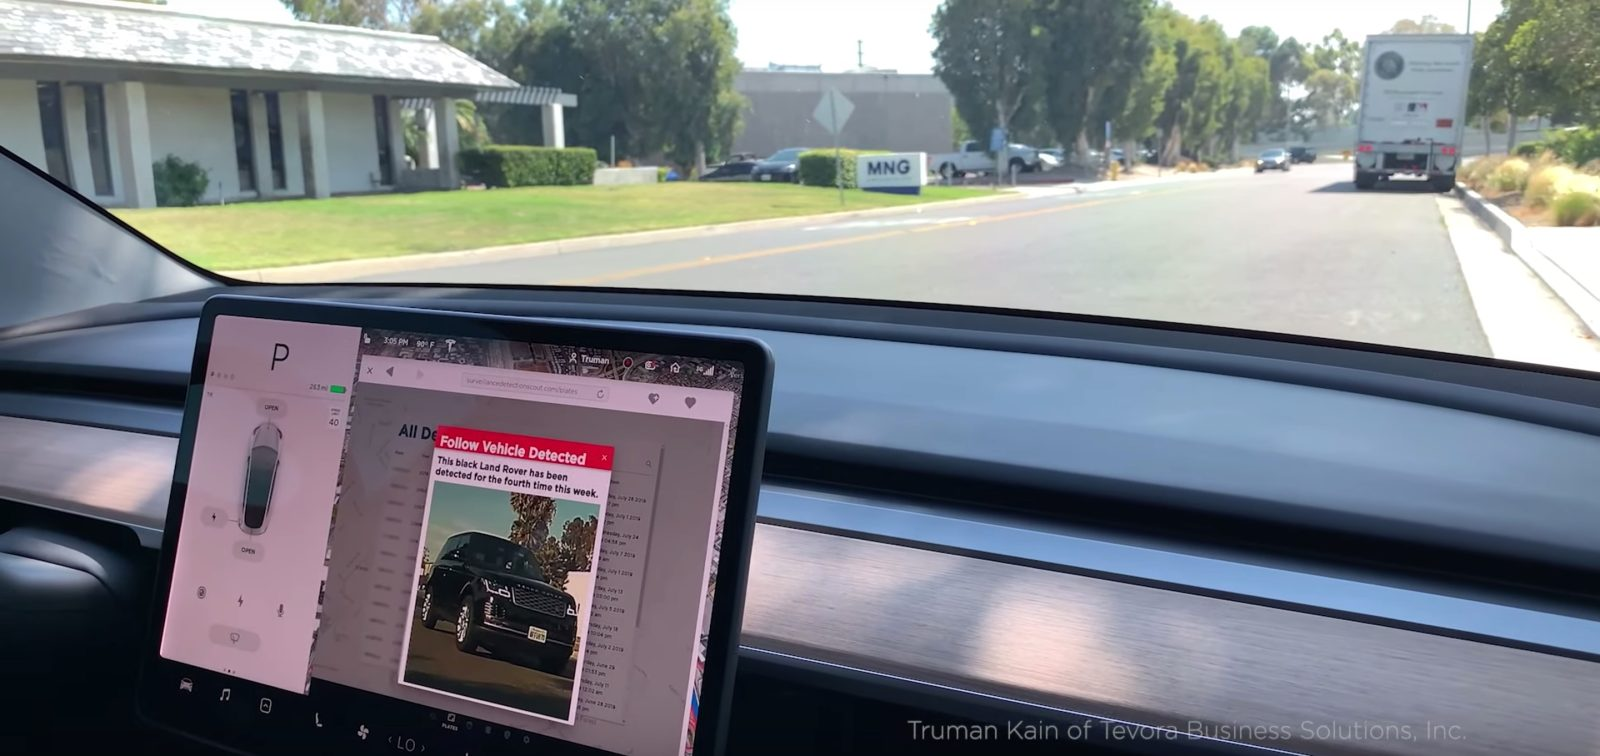 Turn your Tesla into a CIA-like counter-surveillance tool with this hack